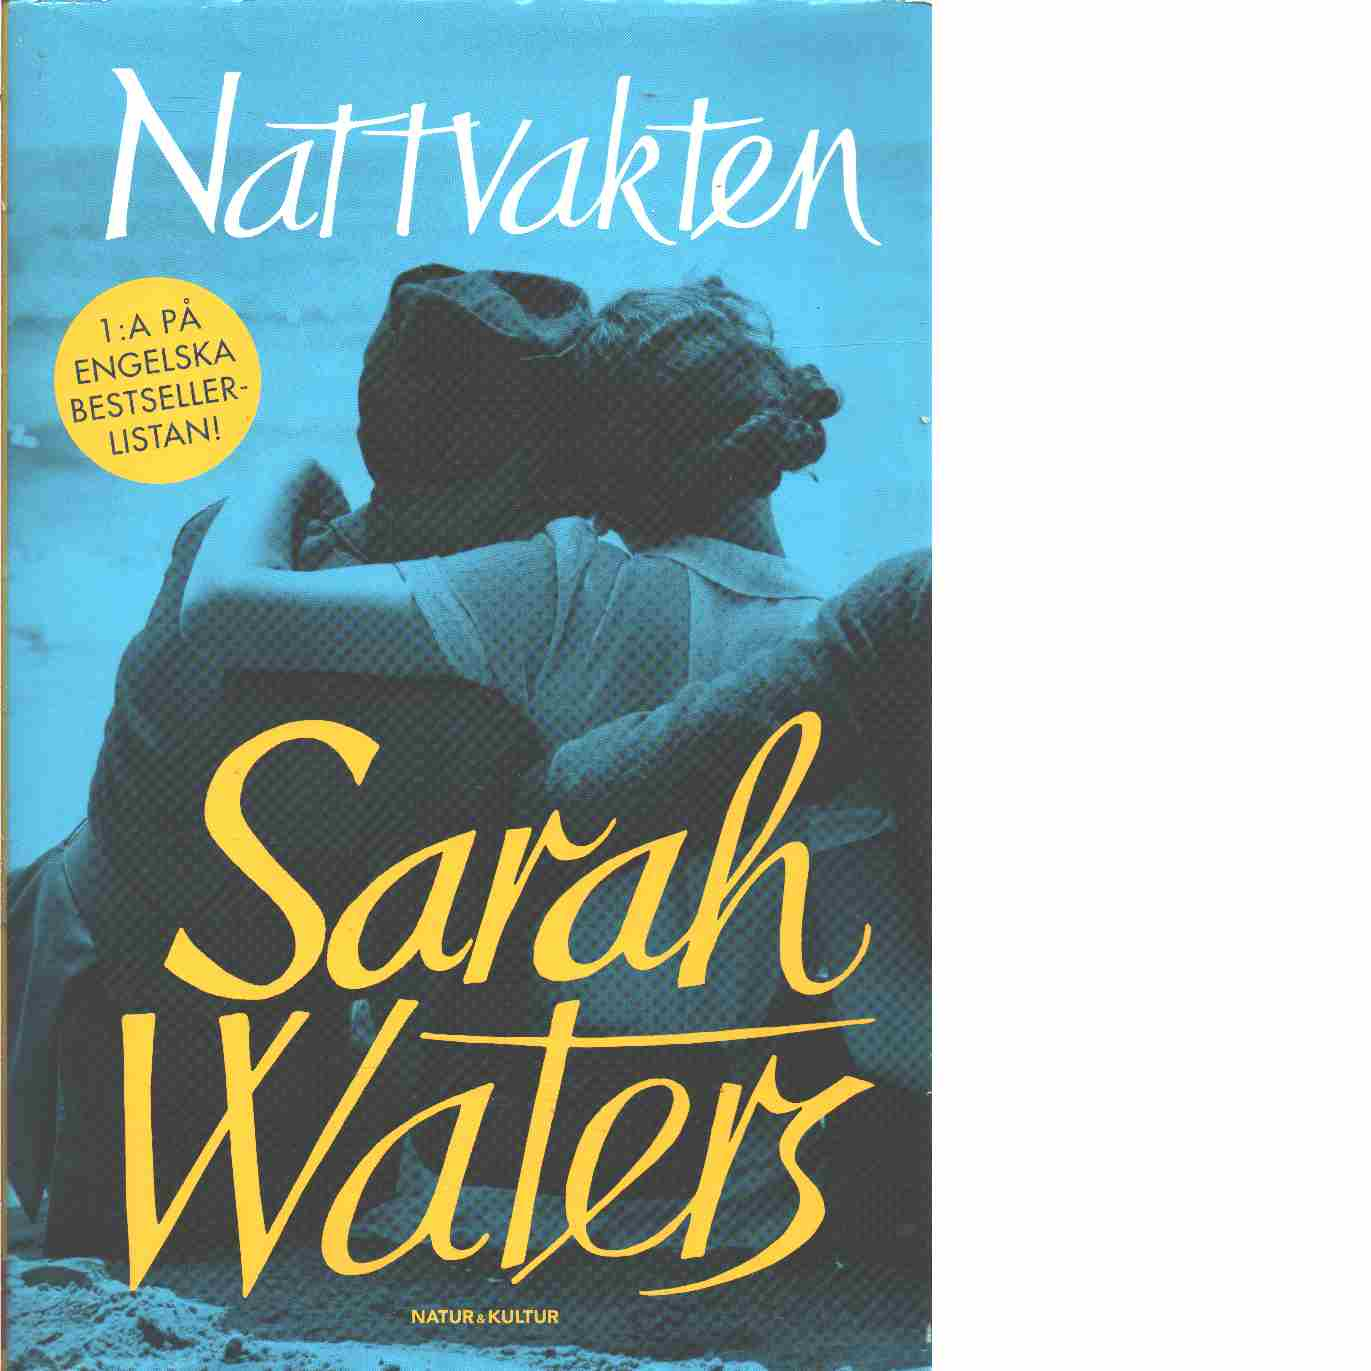 Nattvakten  - Waters, Sarah